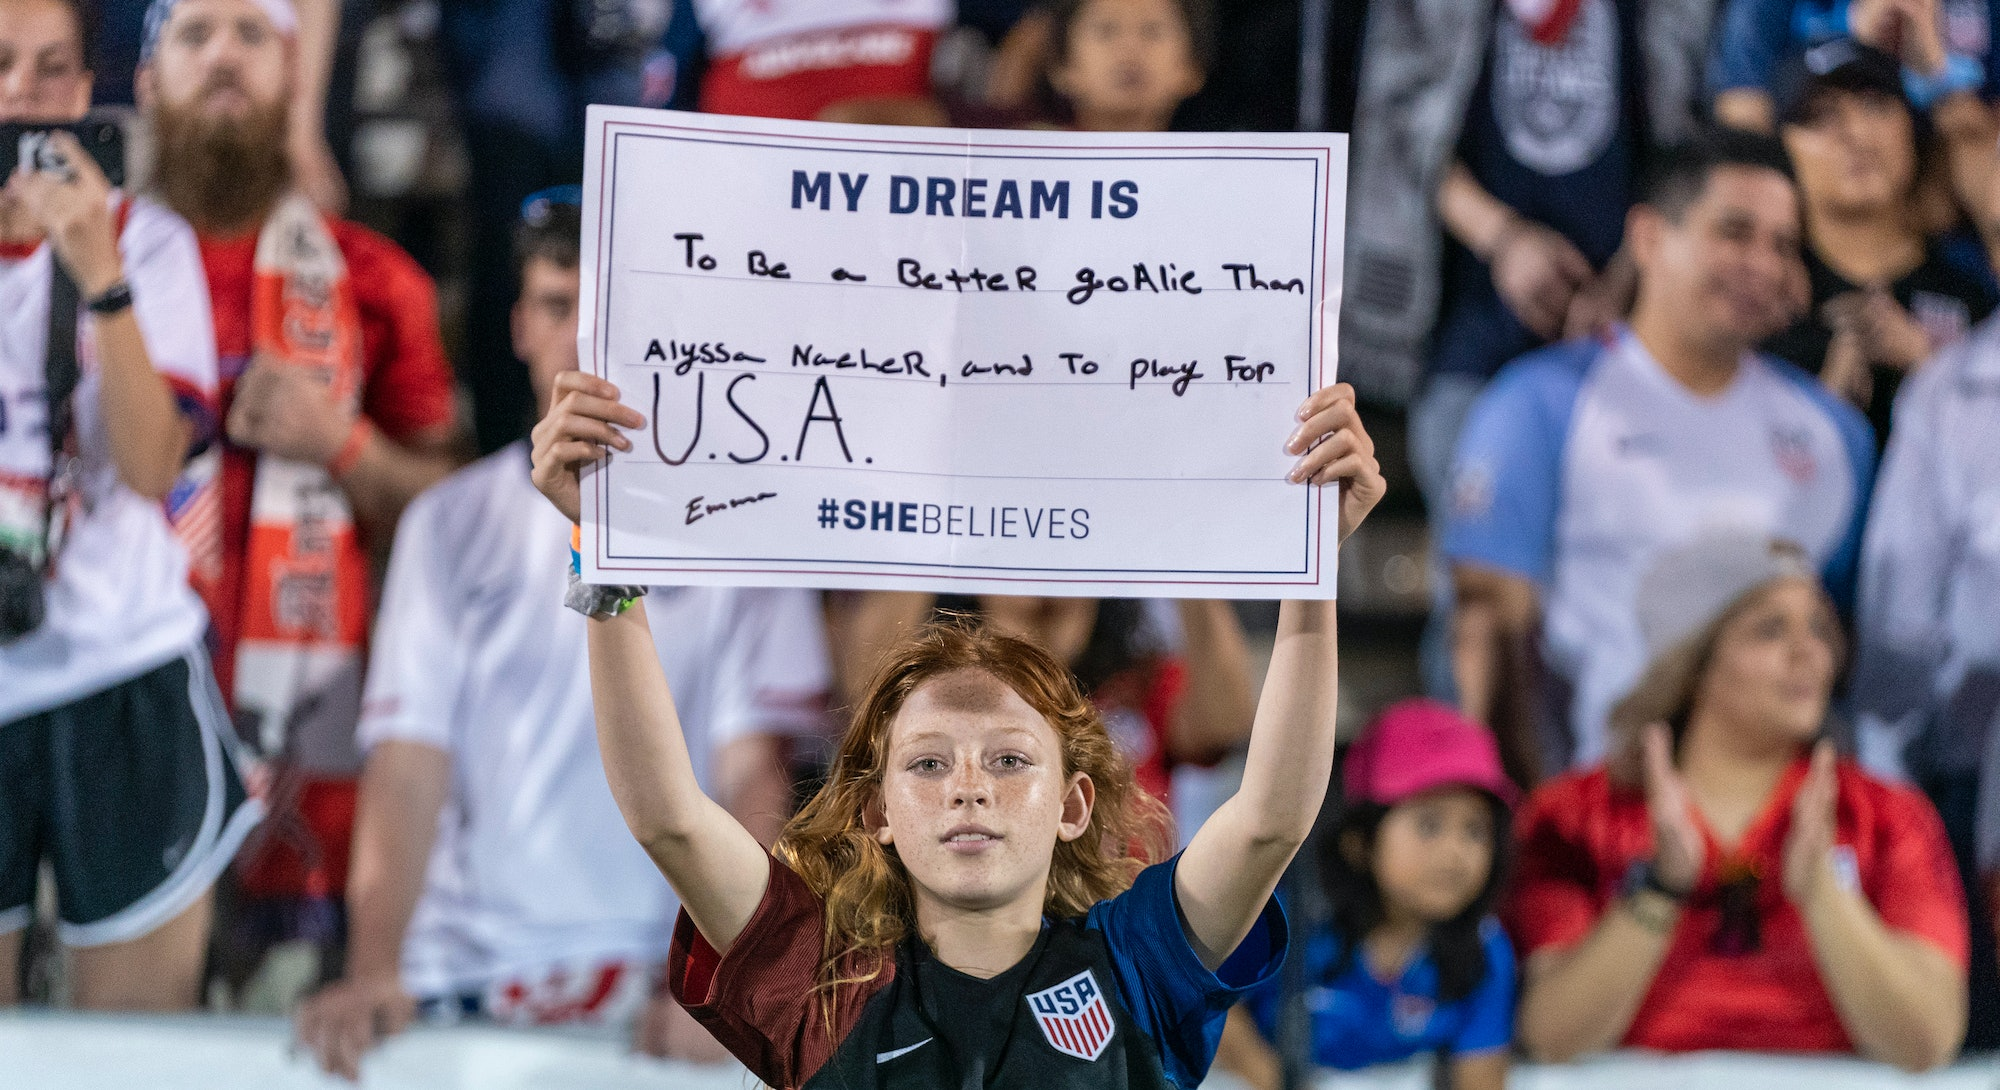 A fan of the U.S. women's national soccer team